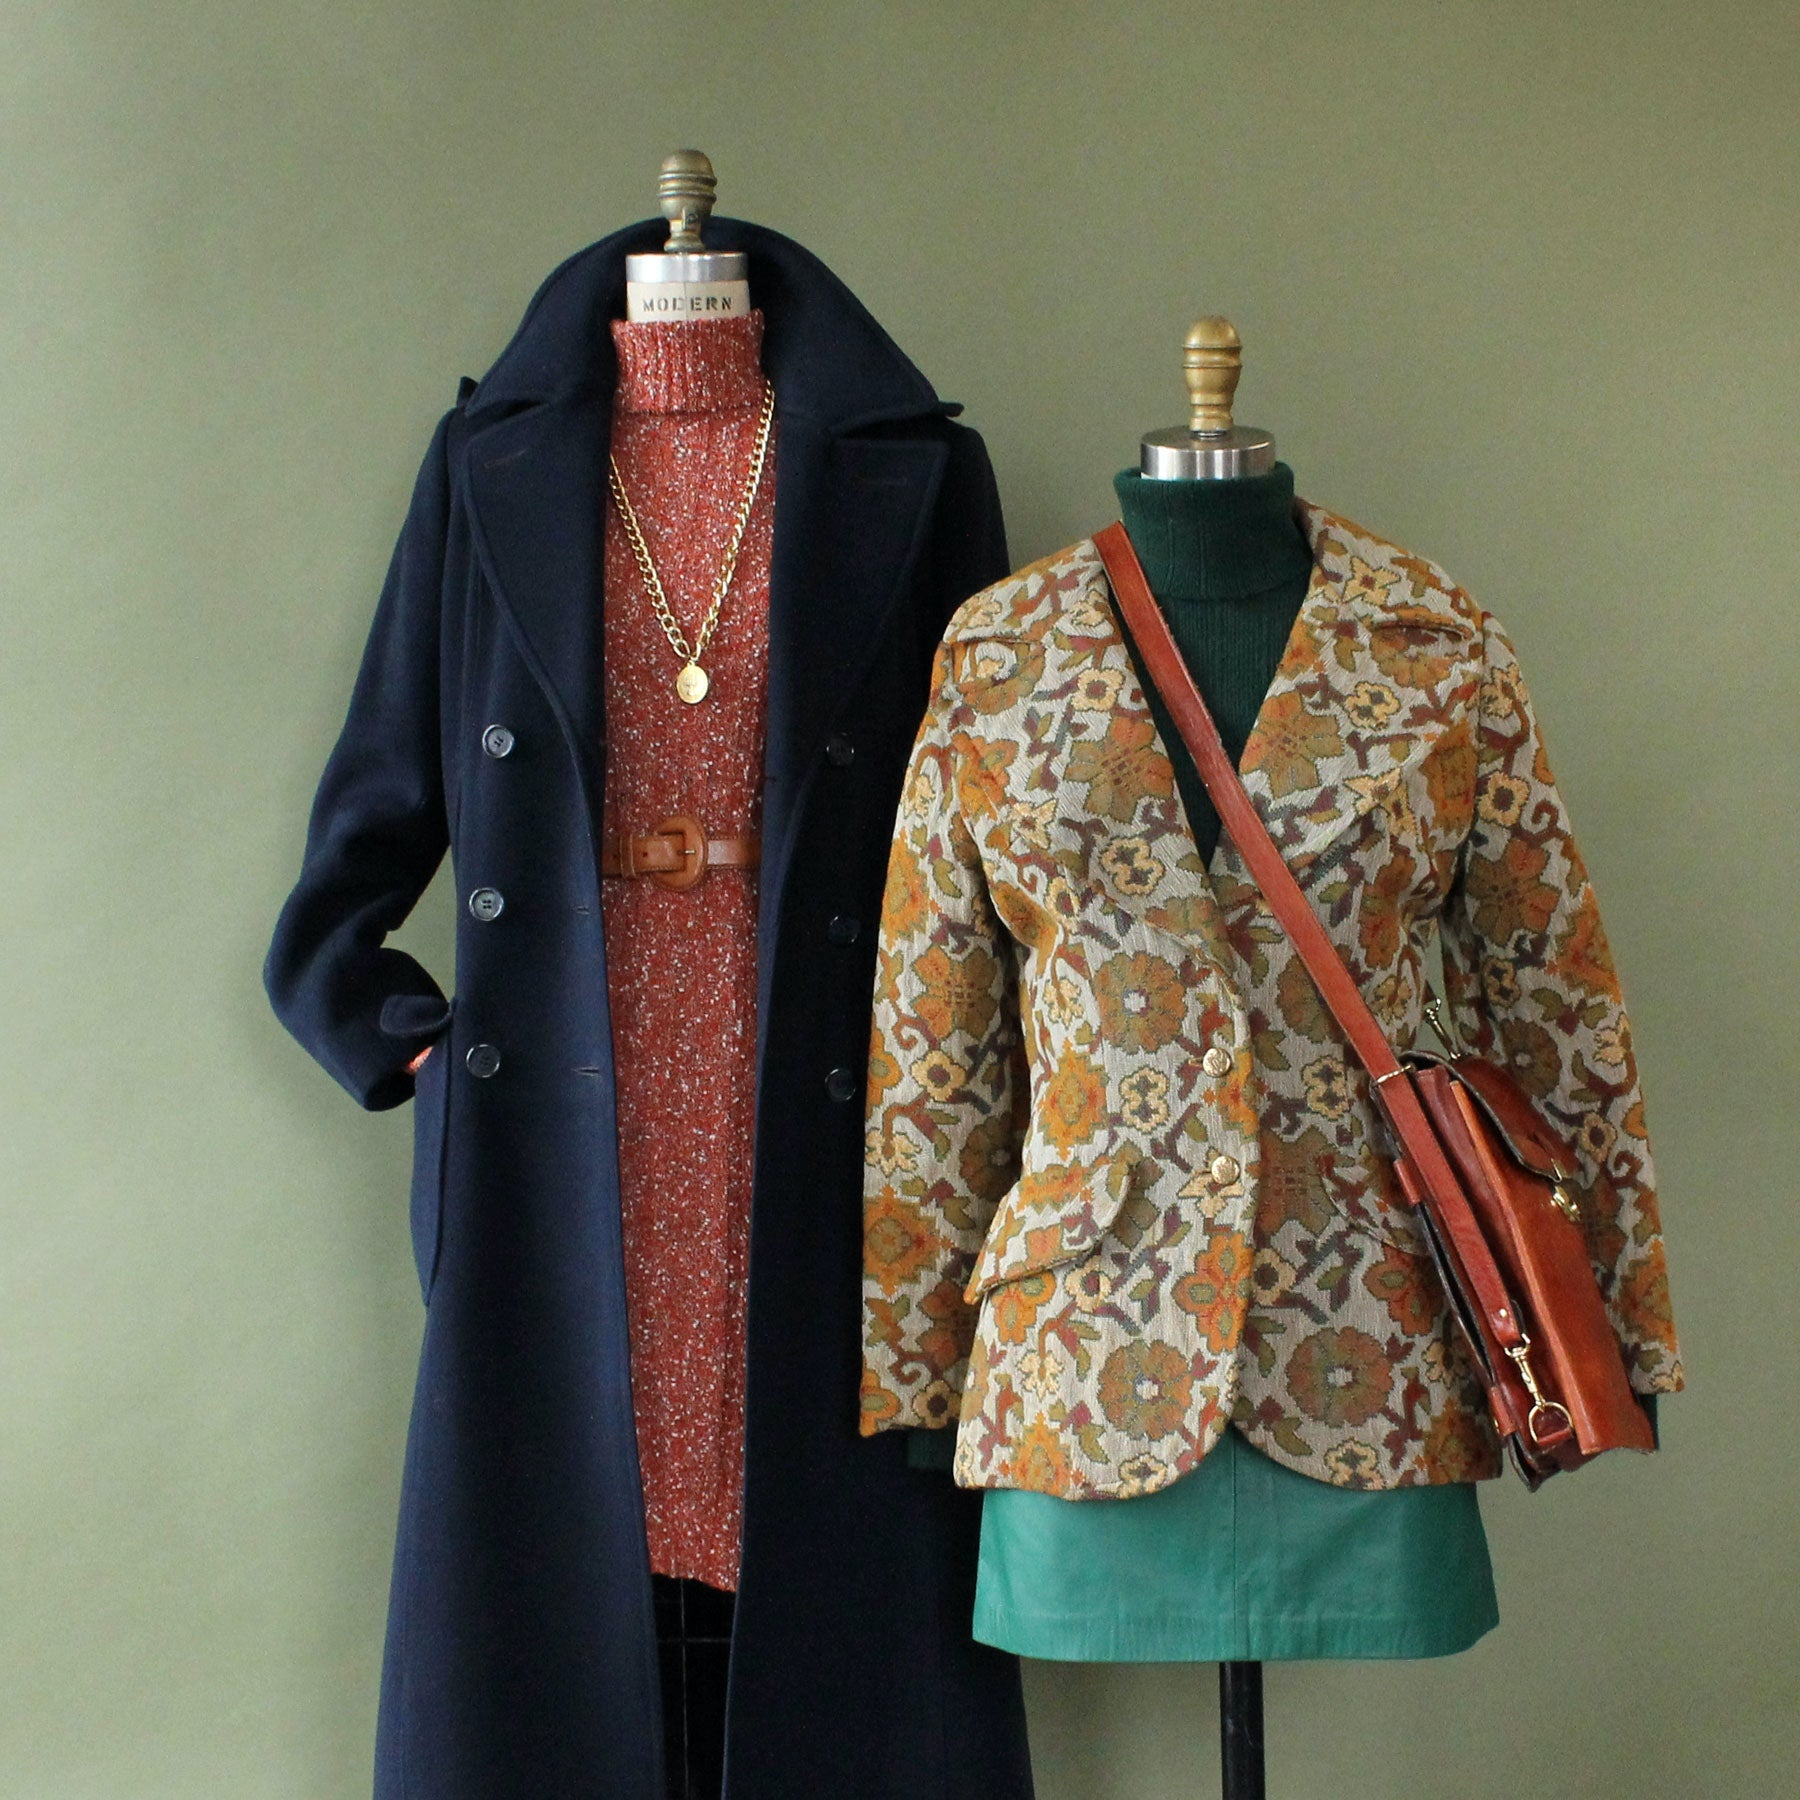 Vintage clothing styled on dressforms